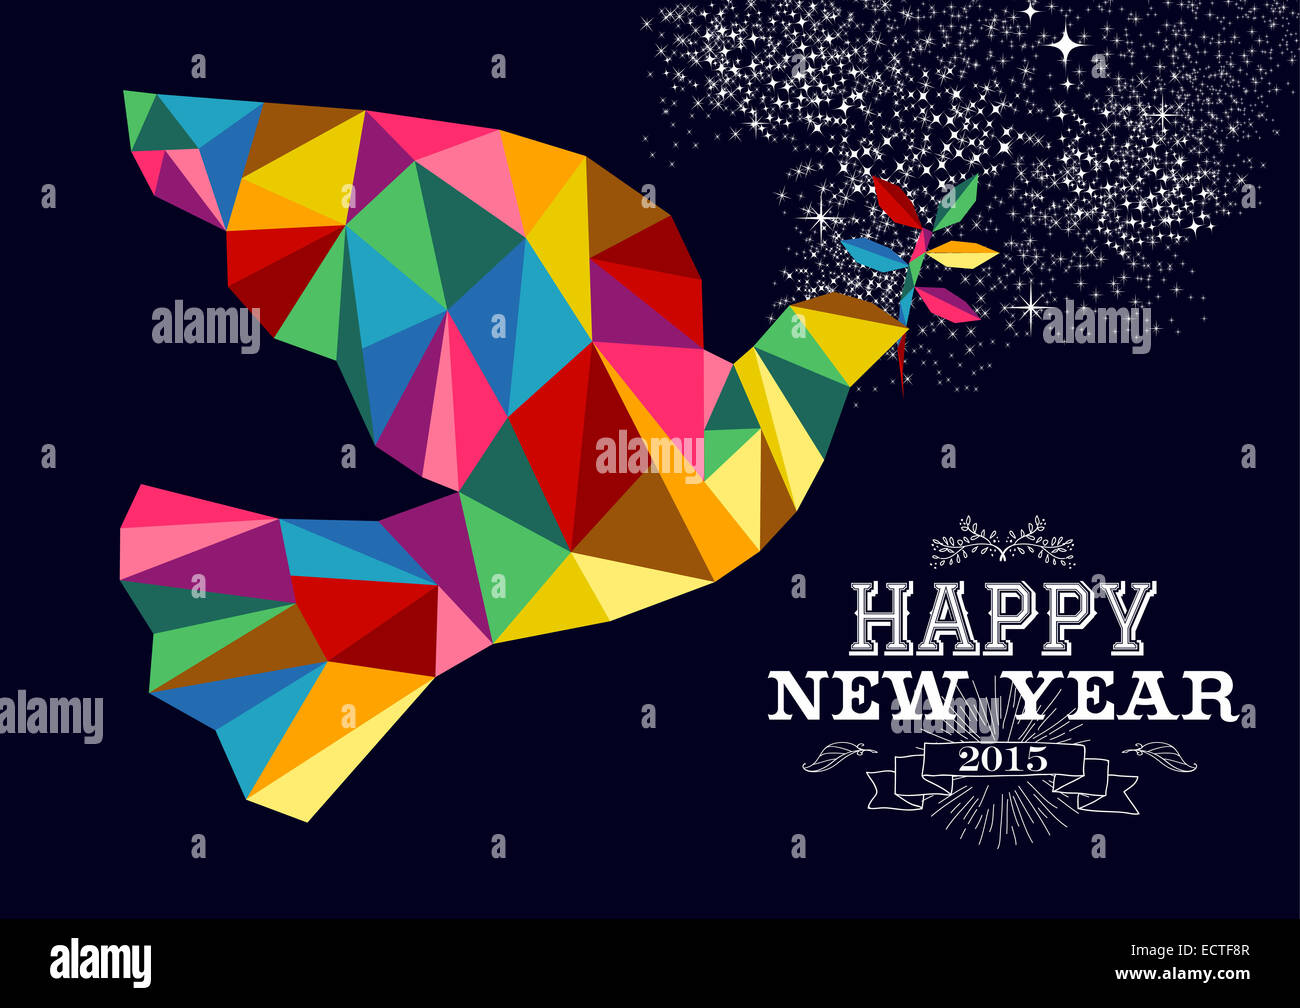 Happy new year 2015 greeting card or poster design with colorful happy new year 2015 greeting card or poster design with colorful triangle peace dove and vintage label illustration eps10 vecto kristyandbryce Images